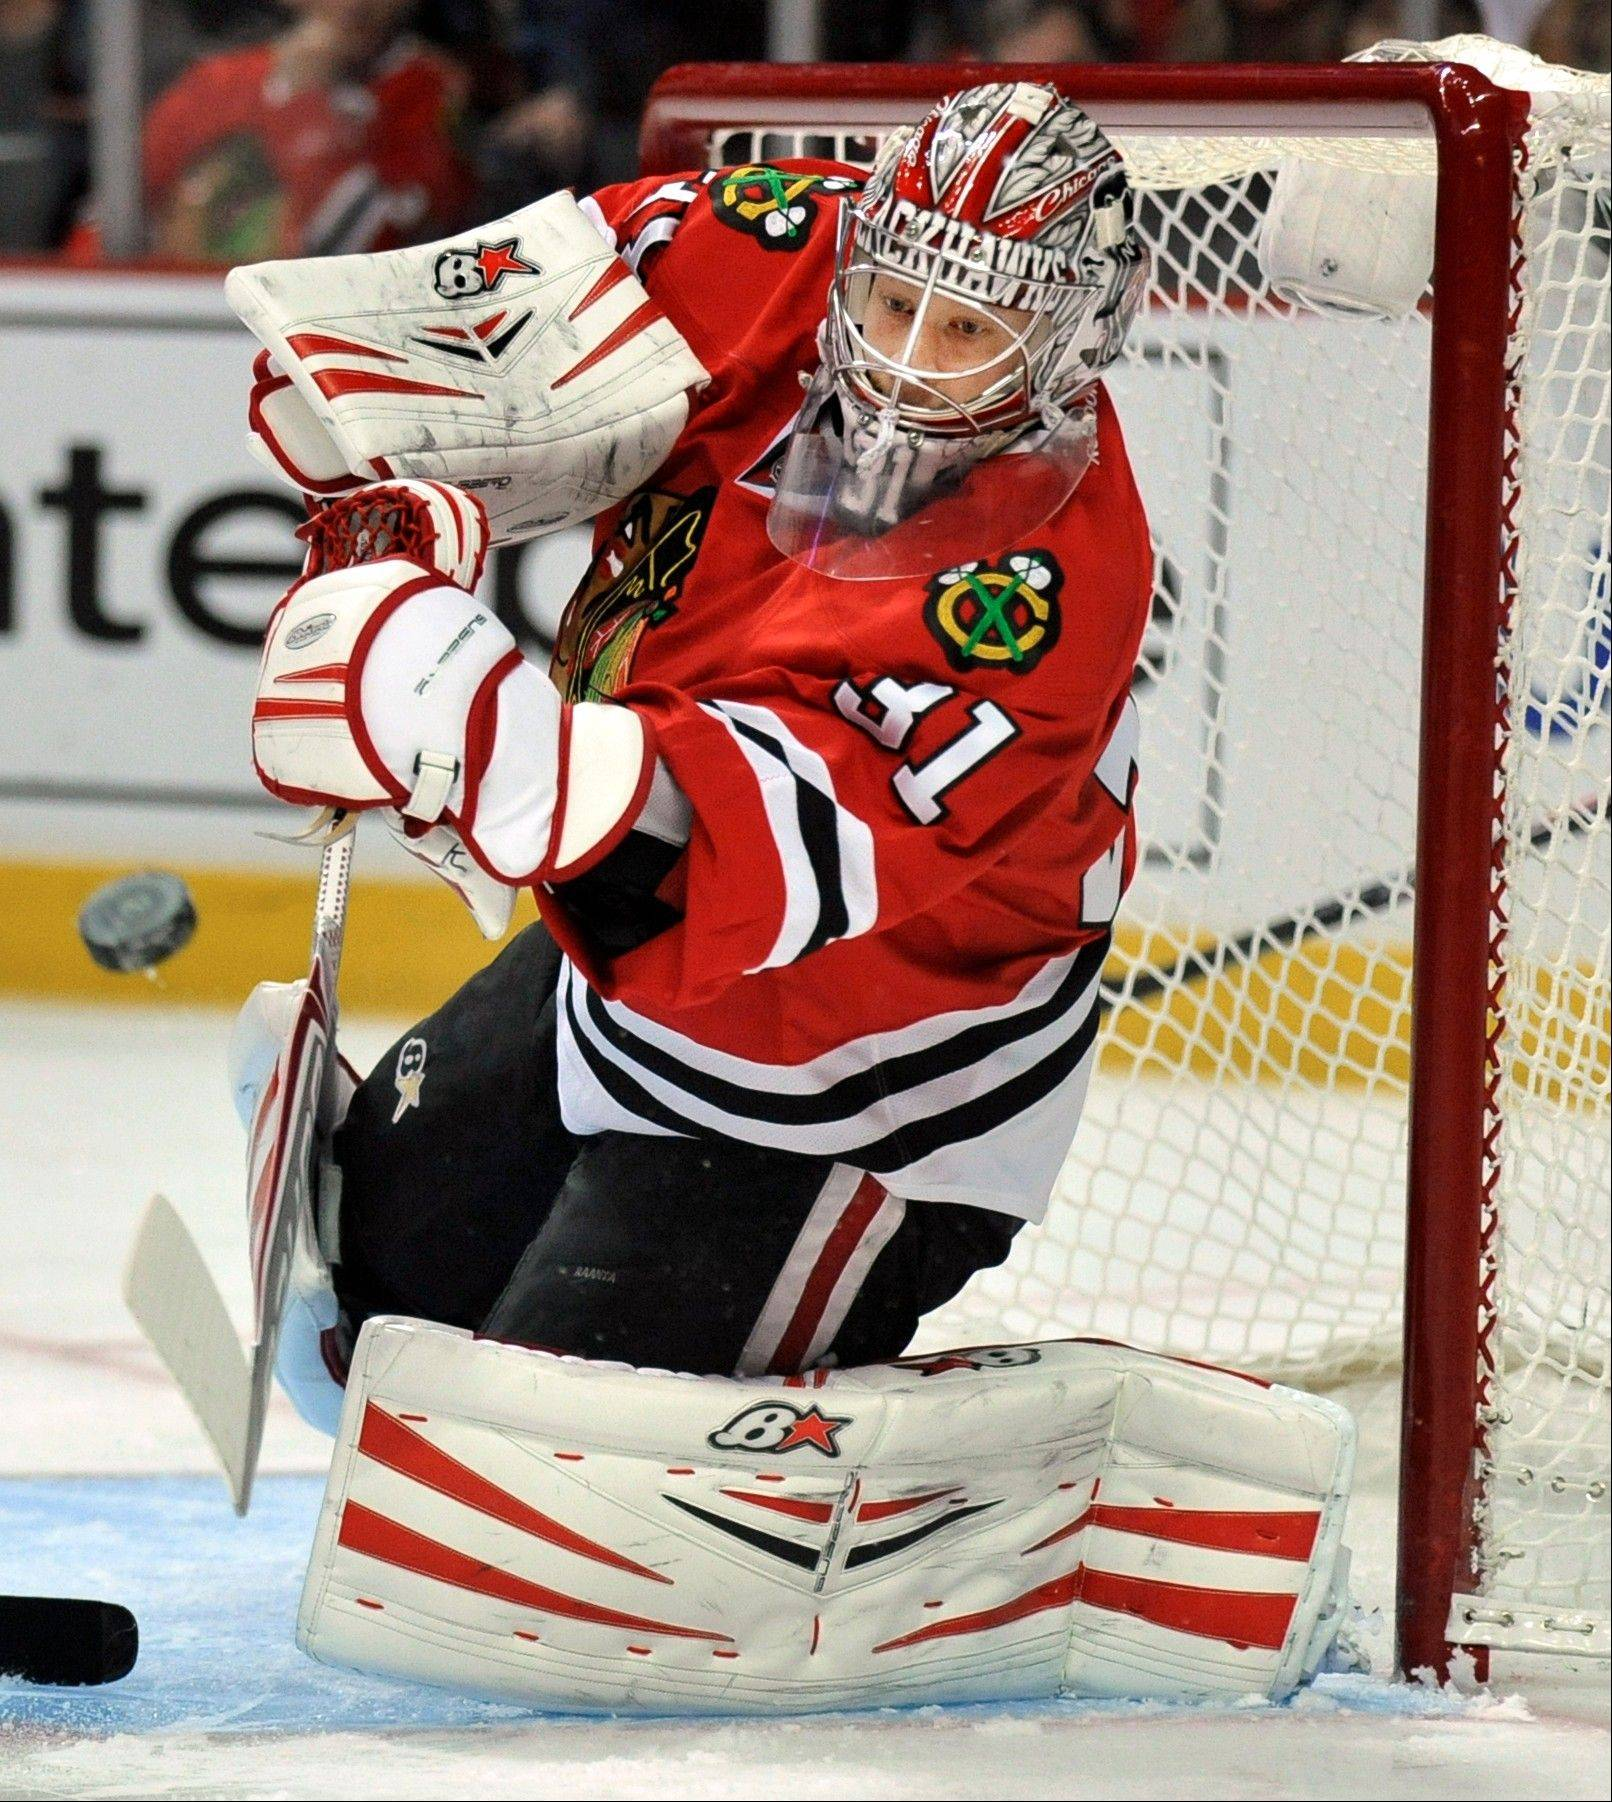 Chicago Blackhawks goalie Antti Raanta makes a save during the first period of an NHL hockey game against the Edmonton Oilers in Chicago, Sunday, Jan., 12, 2014.